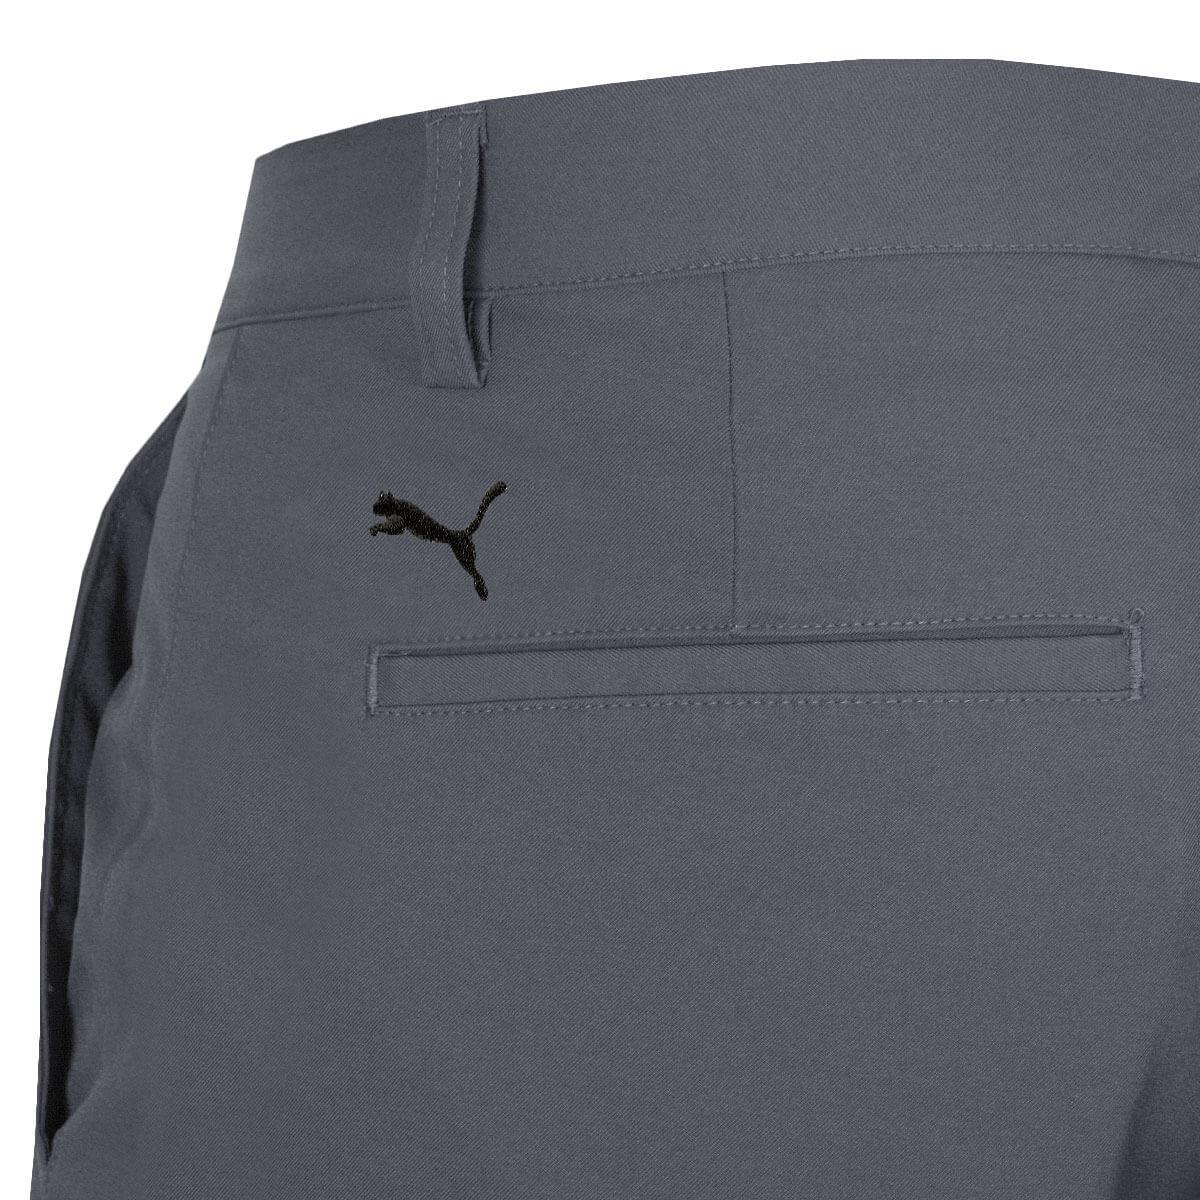 Puma-Golf-Mens-Stretch-Pounce-Golf-Stretch-Wicking-Trousers-45-OFF-RRP thumbnail 13